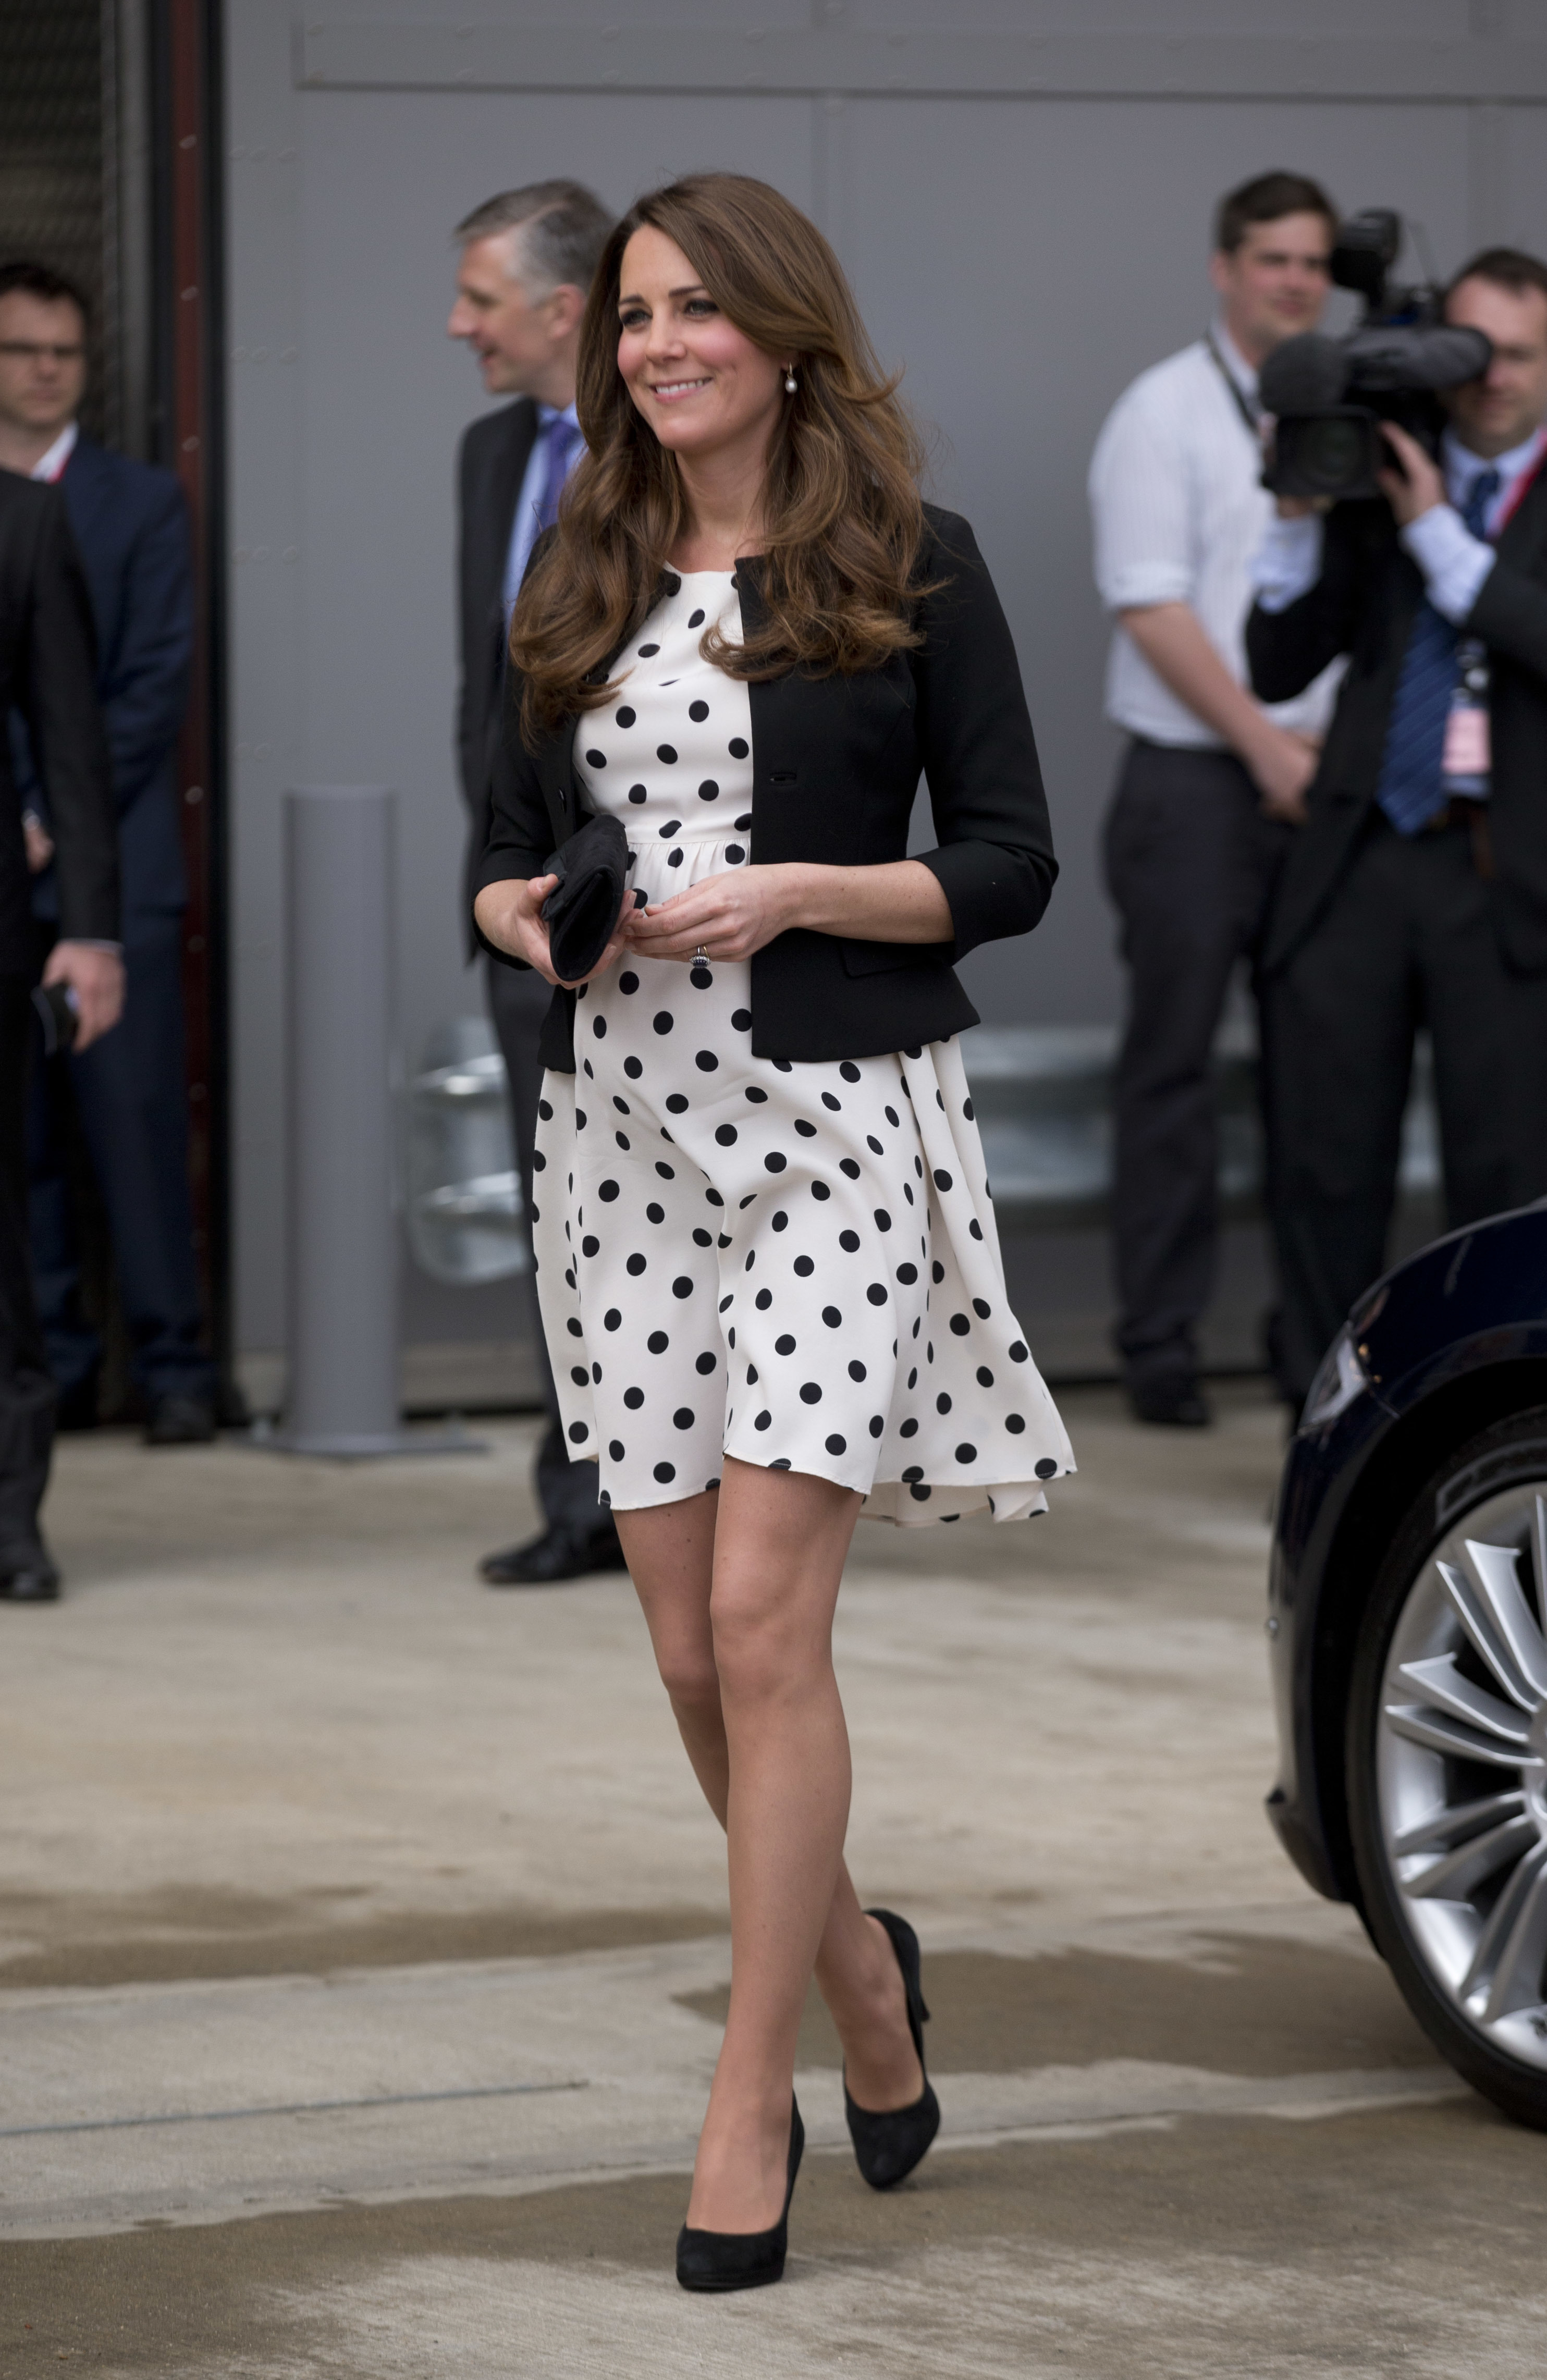 Duchess Kate polka dot dress